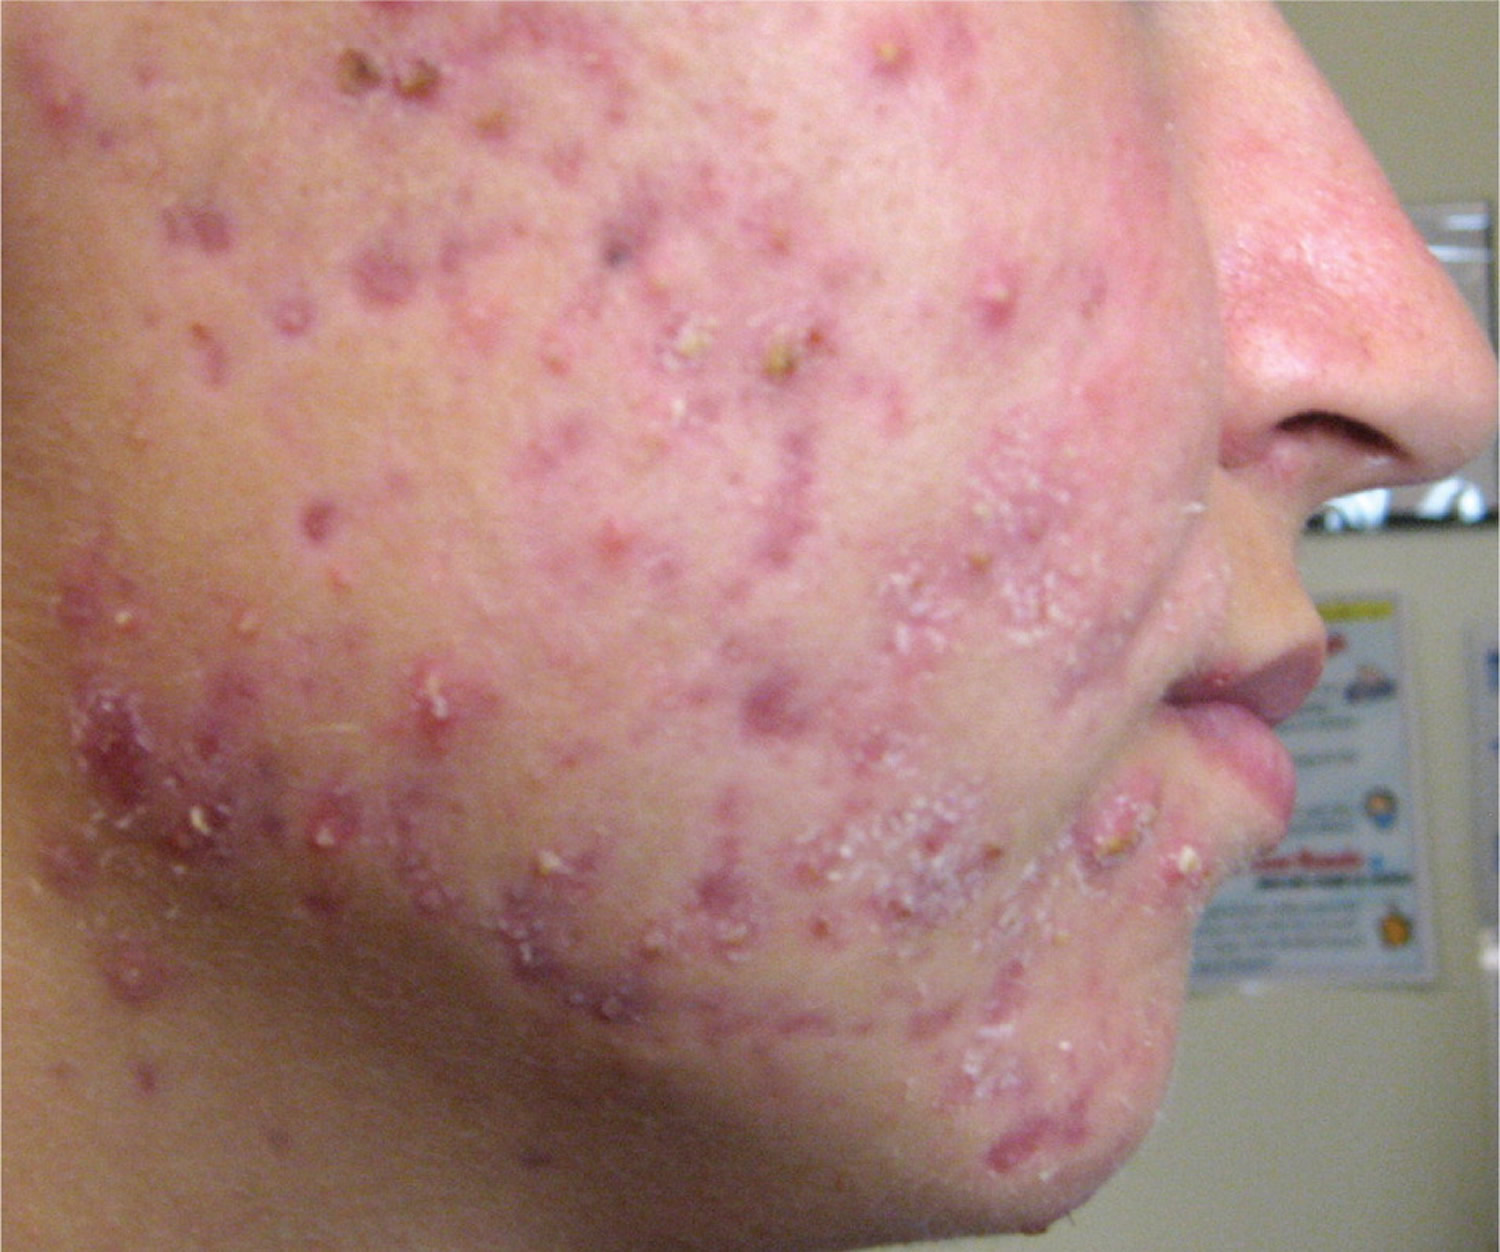 Acne Pimples Caises Best Treatment To Get Rid Of Acne And Pimples